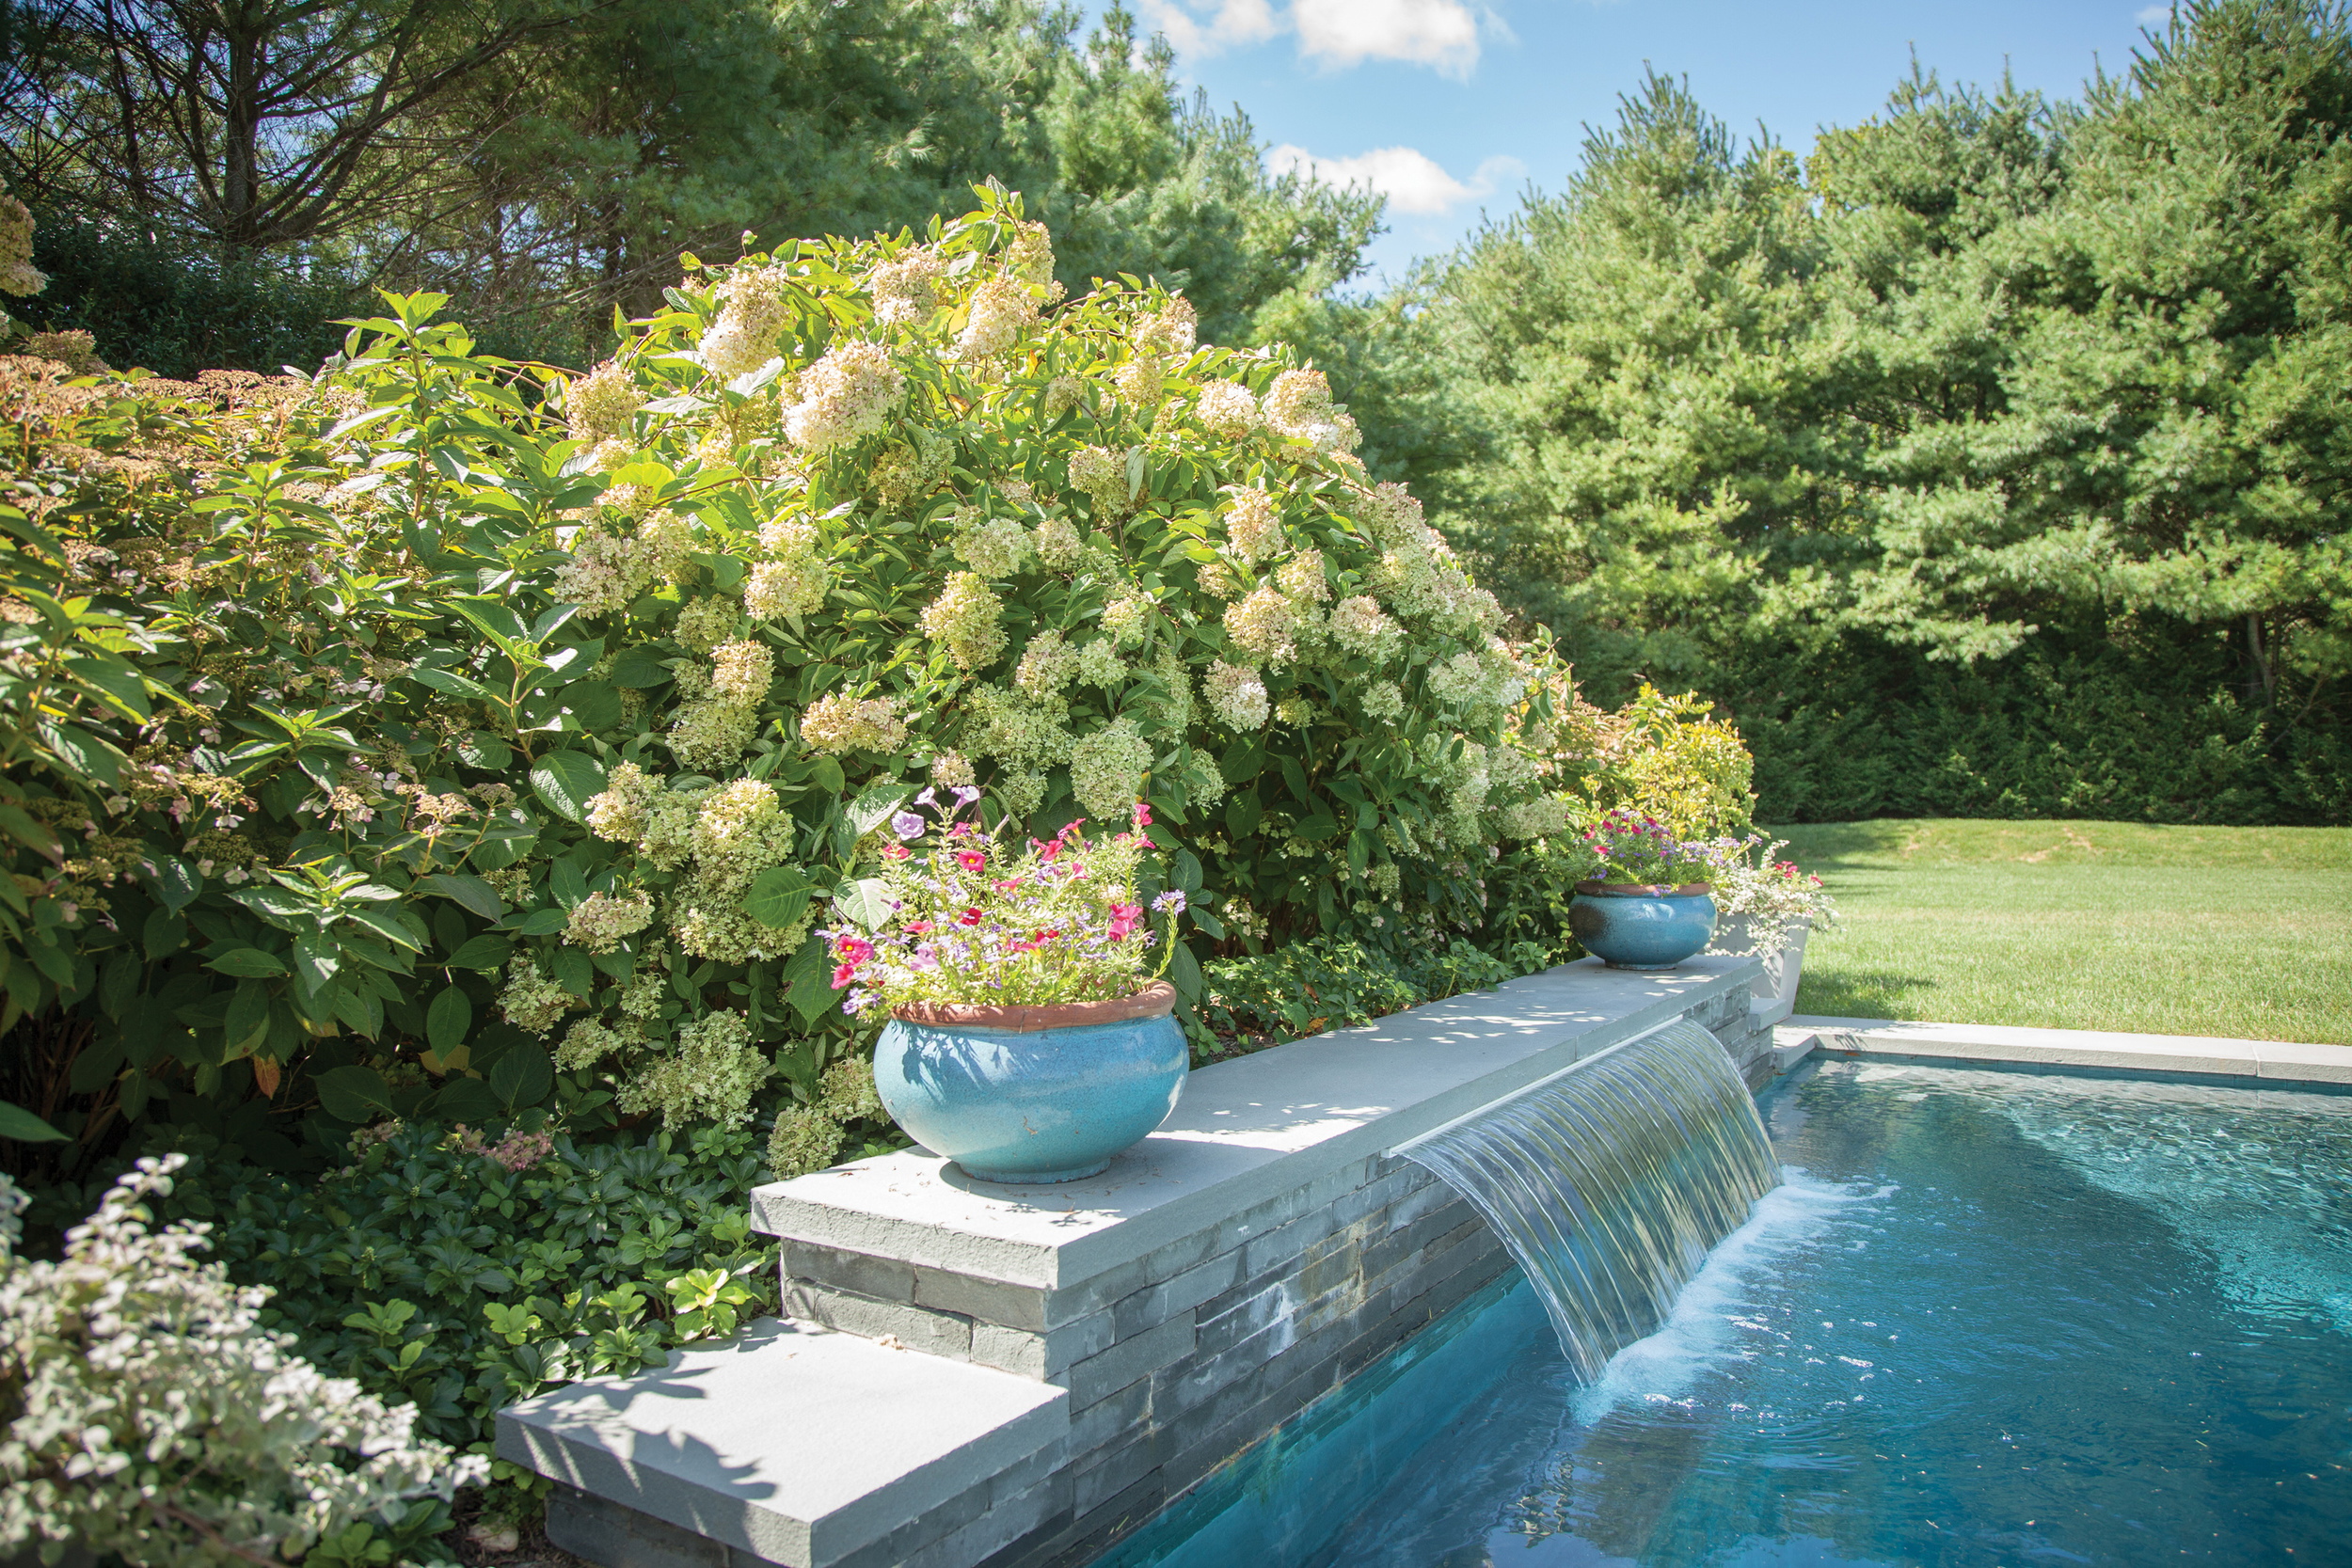 Proper pH Pools - Silver, Water Feature with Pool